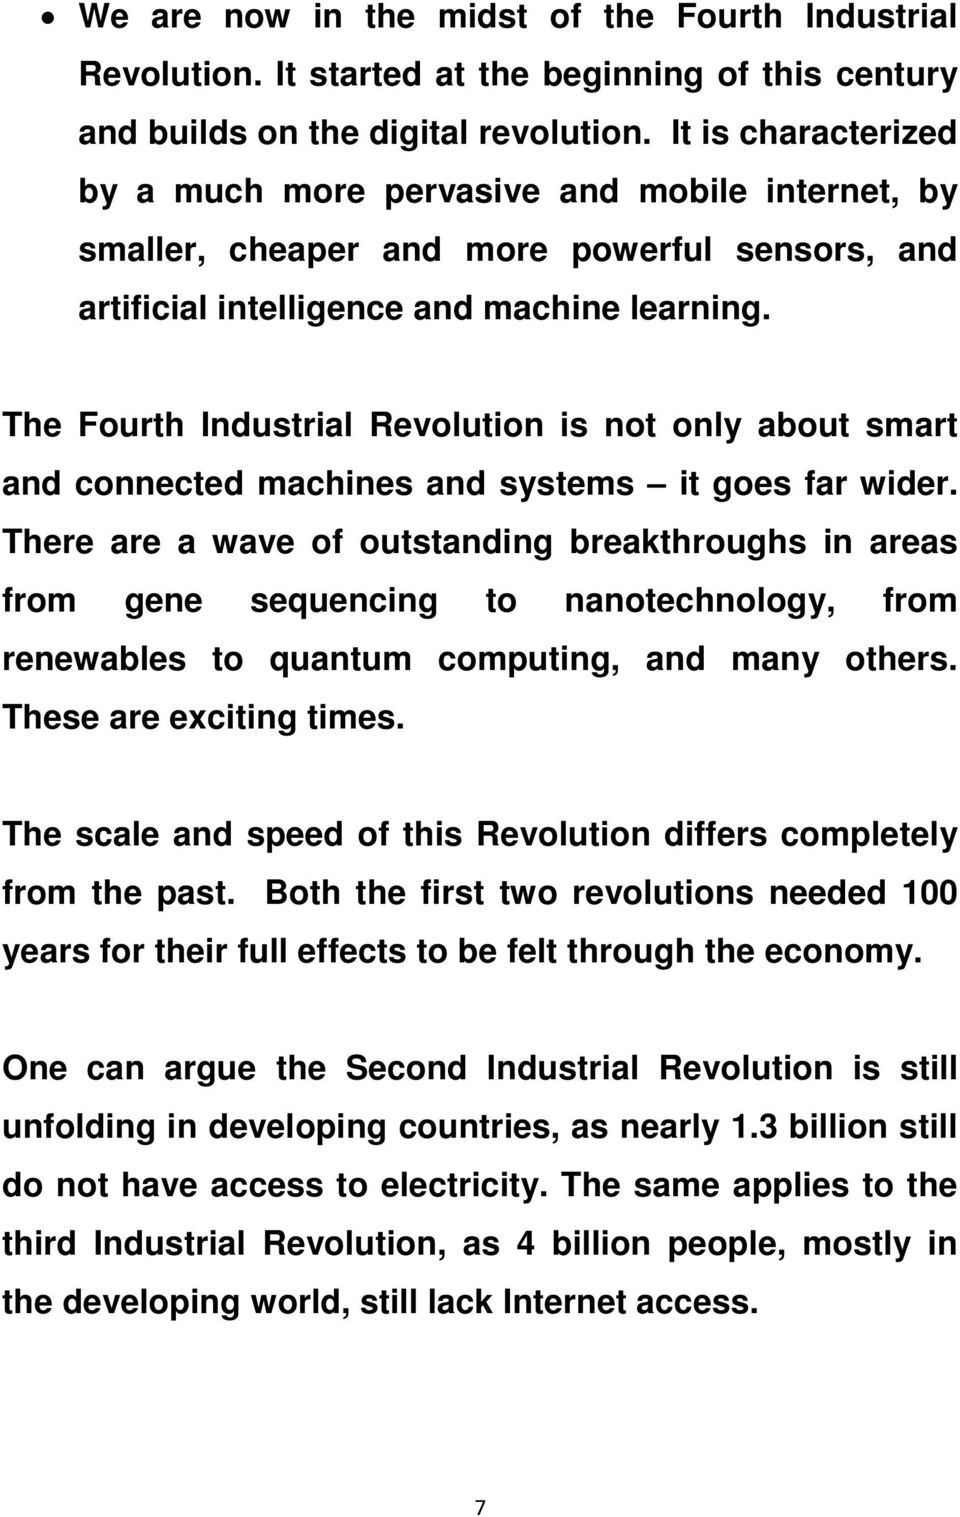 The Fourth Industrial Revolution is not only about smart and connected machines and systems it goes far wider.